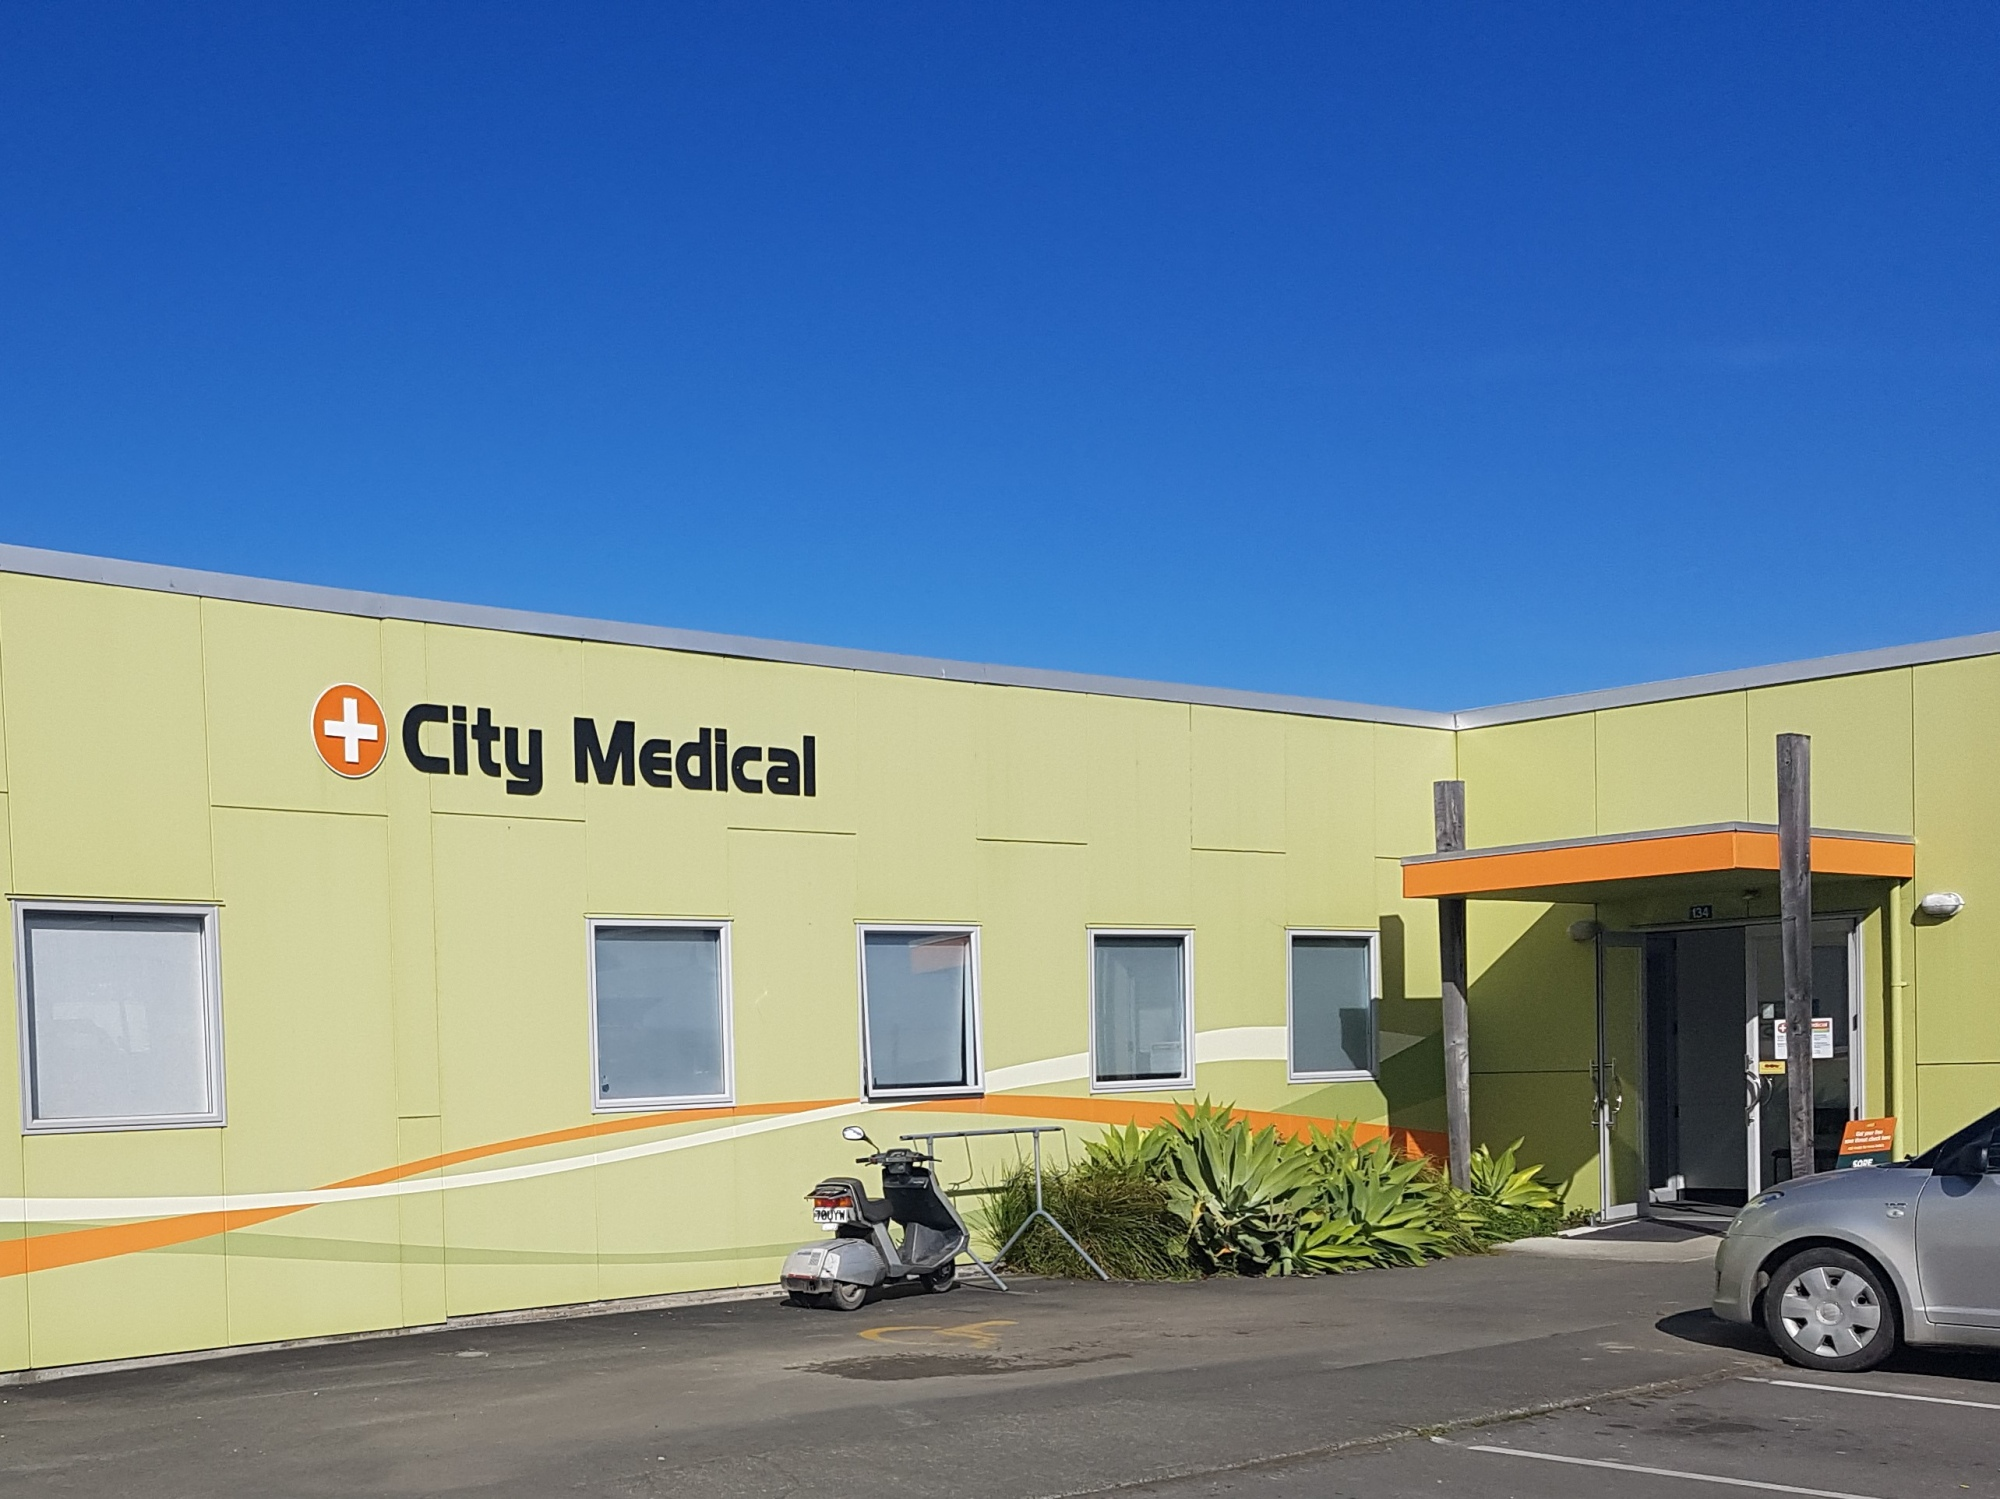 City Medical Gisborne Ltd